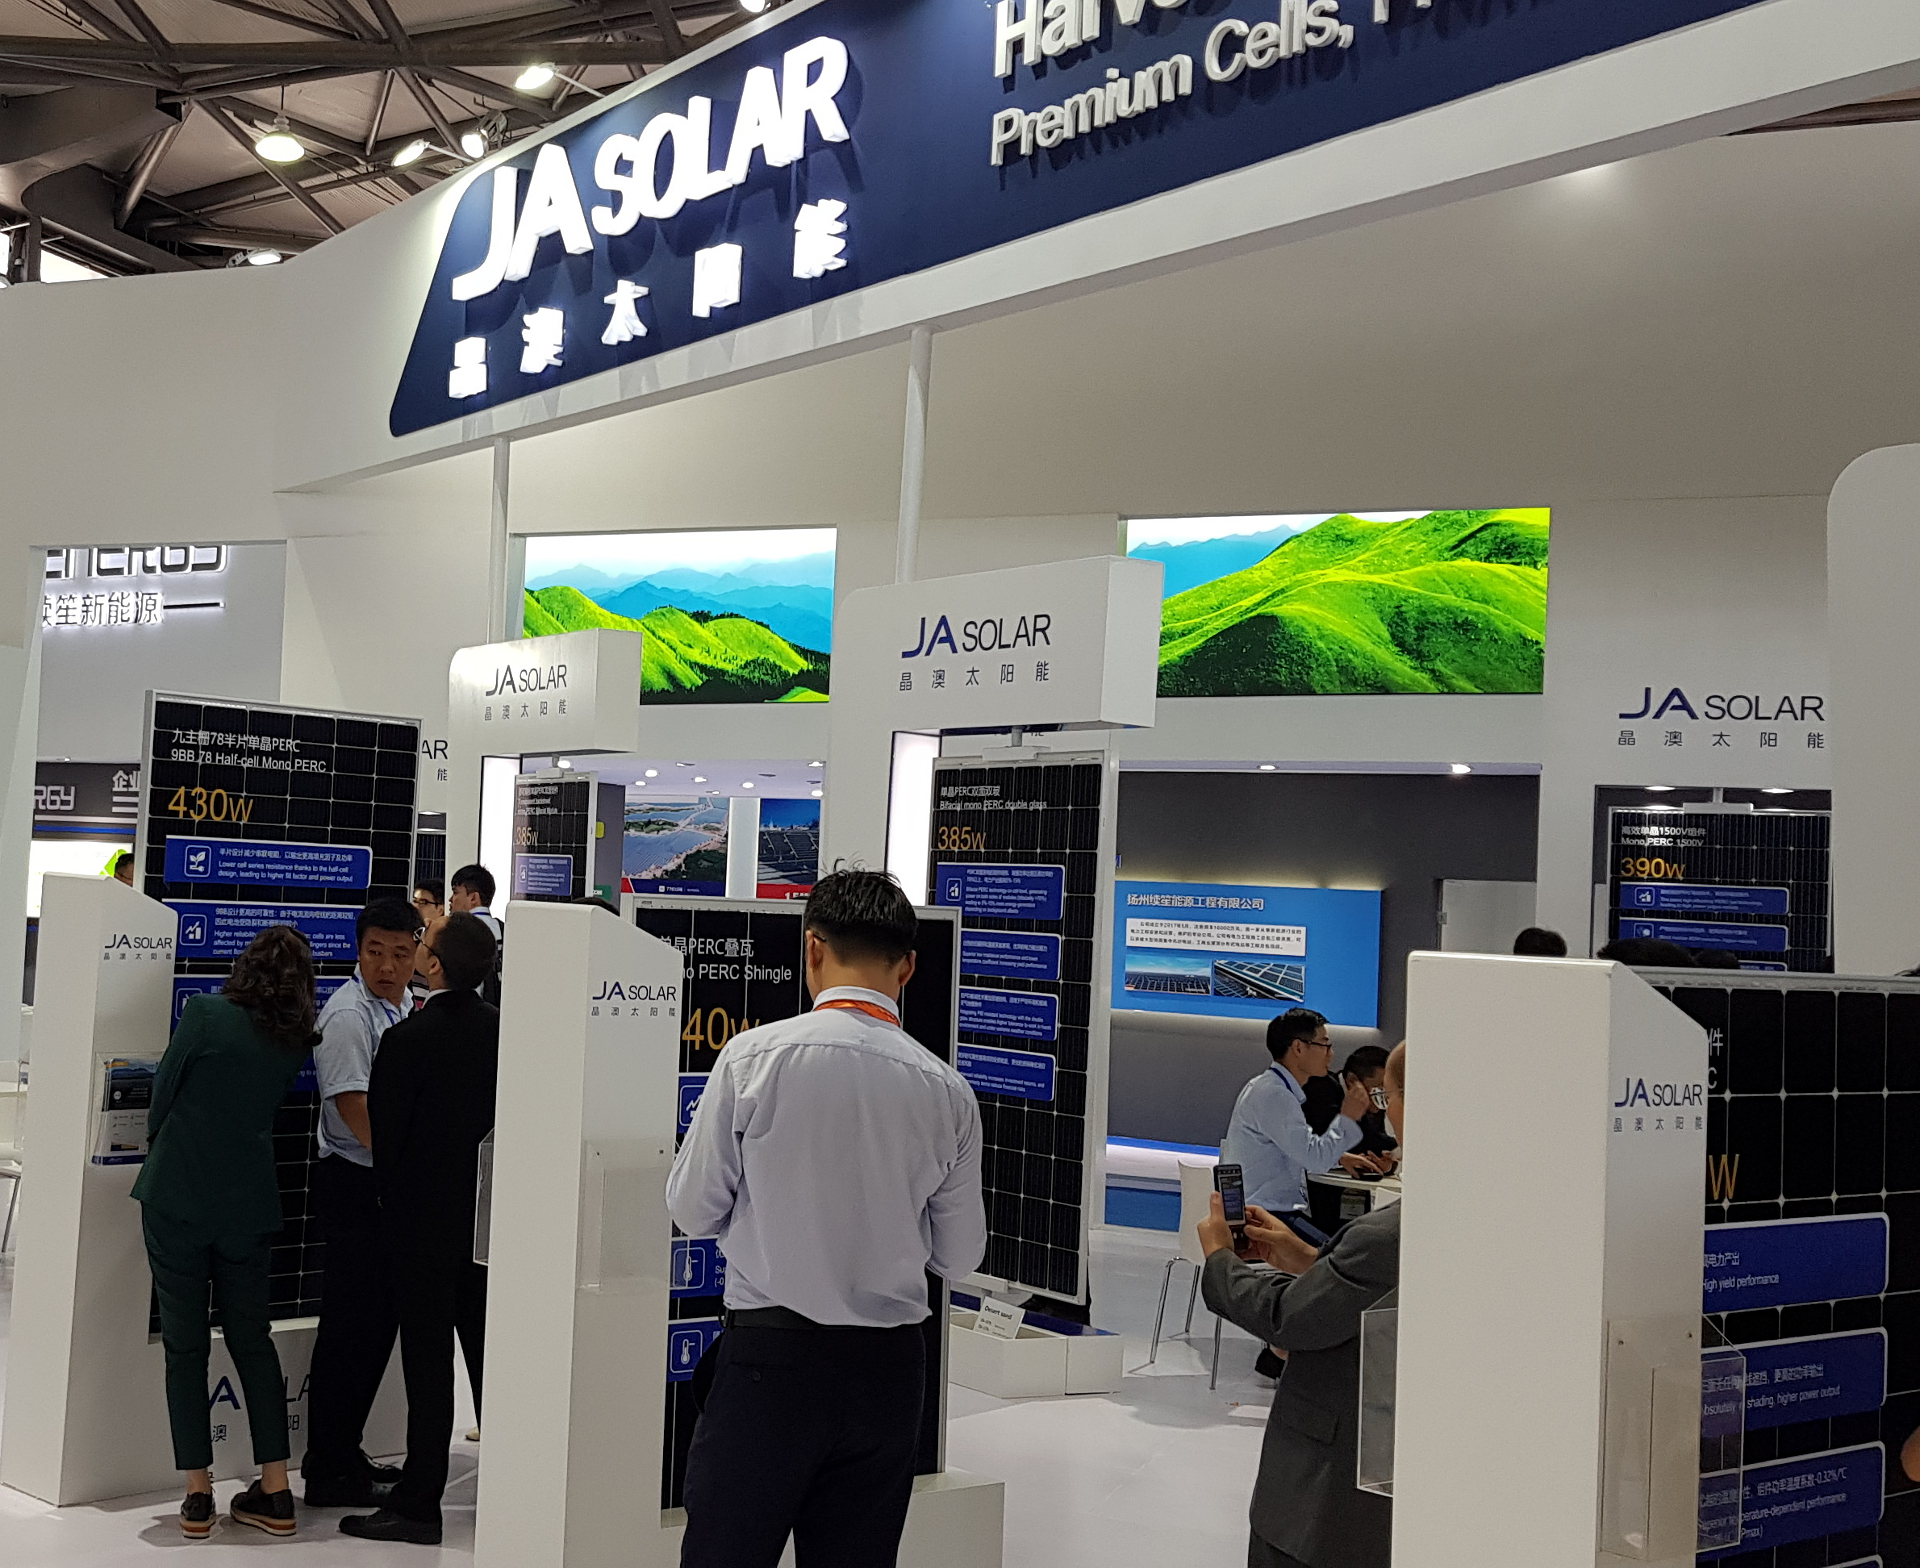 JA Solar has added a further 6GW of future PV module assembly capacity expansions to its significant roster already announced in 2020.